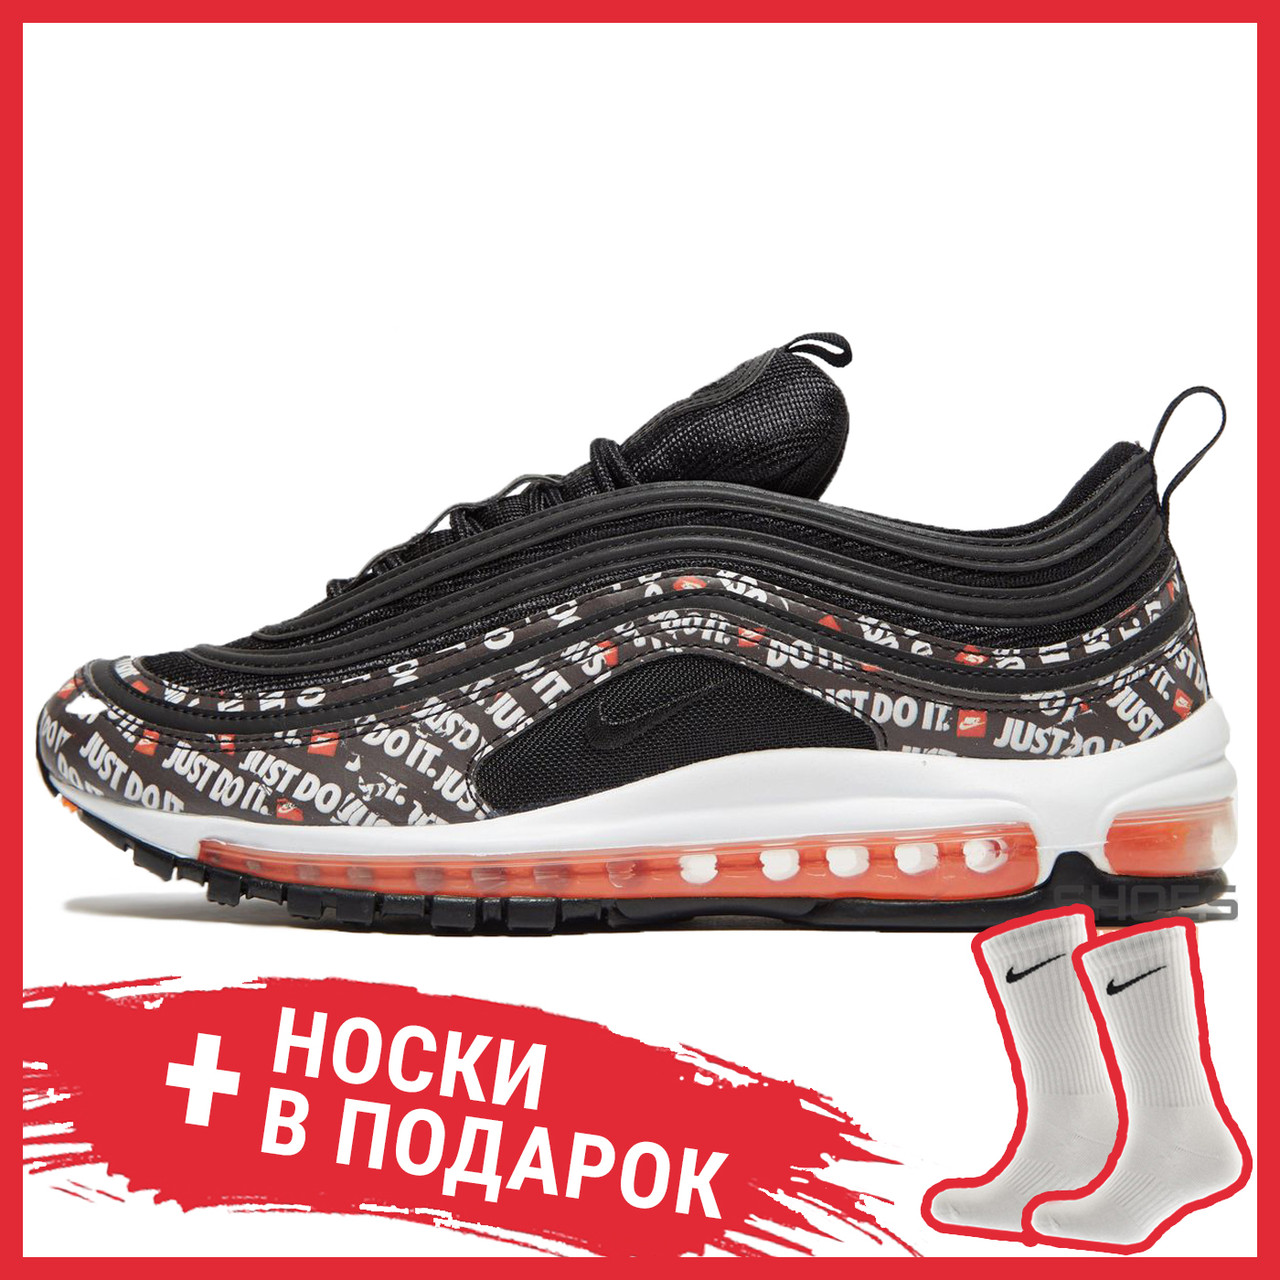 cheap for discount 033b1 f77b7 Мужские кроссовки Nike Air Max 97 Just Do it Pack Black AT8437-001, Найк  Аир Макс 97